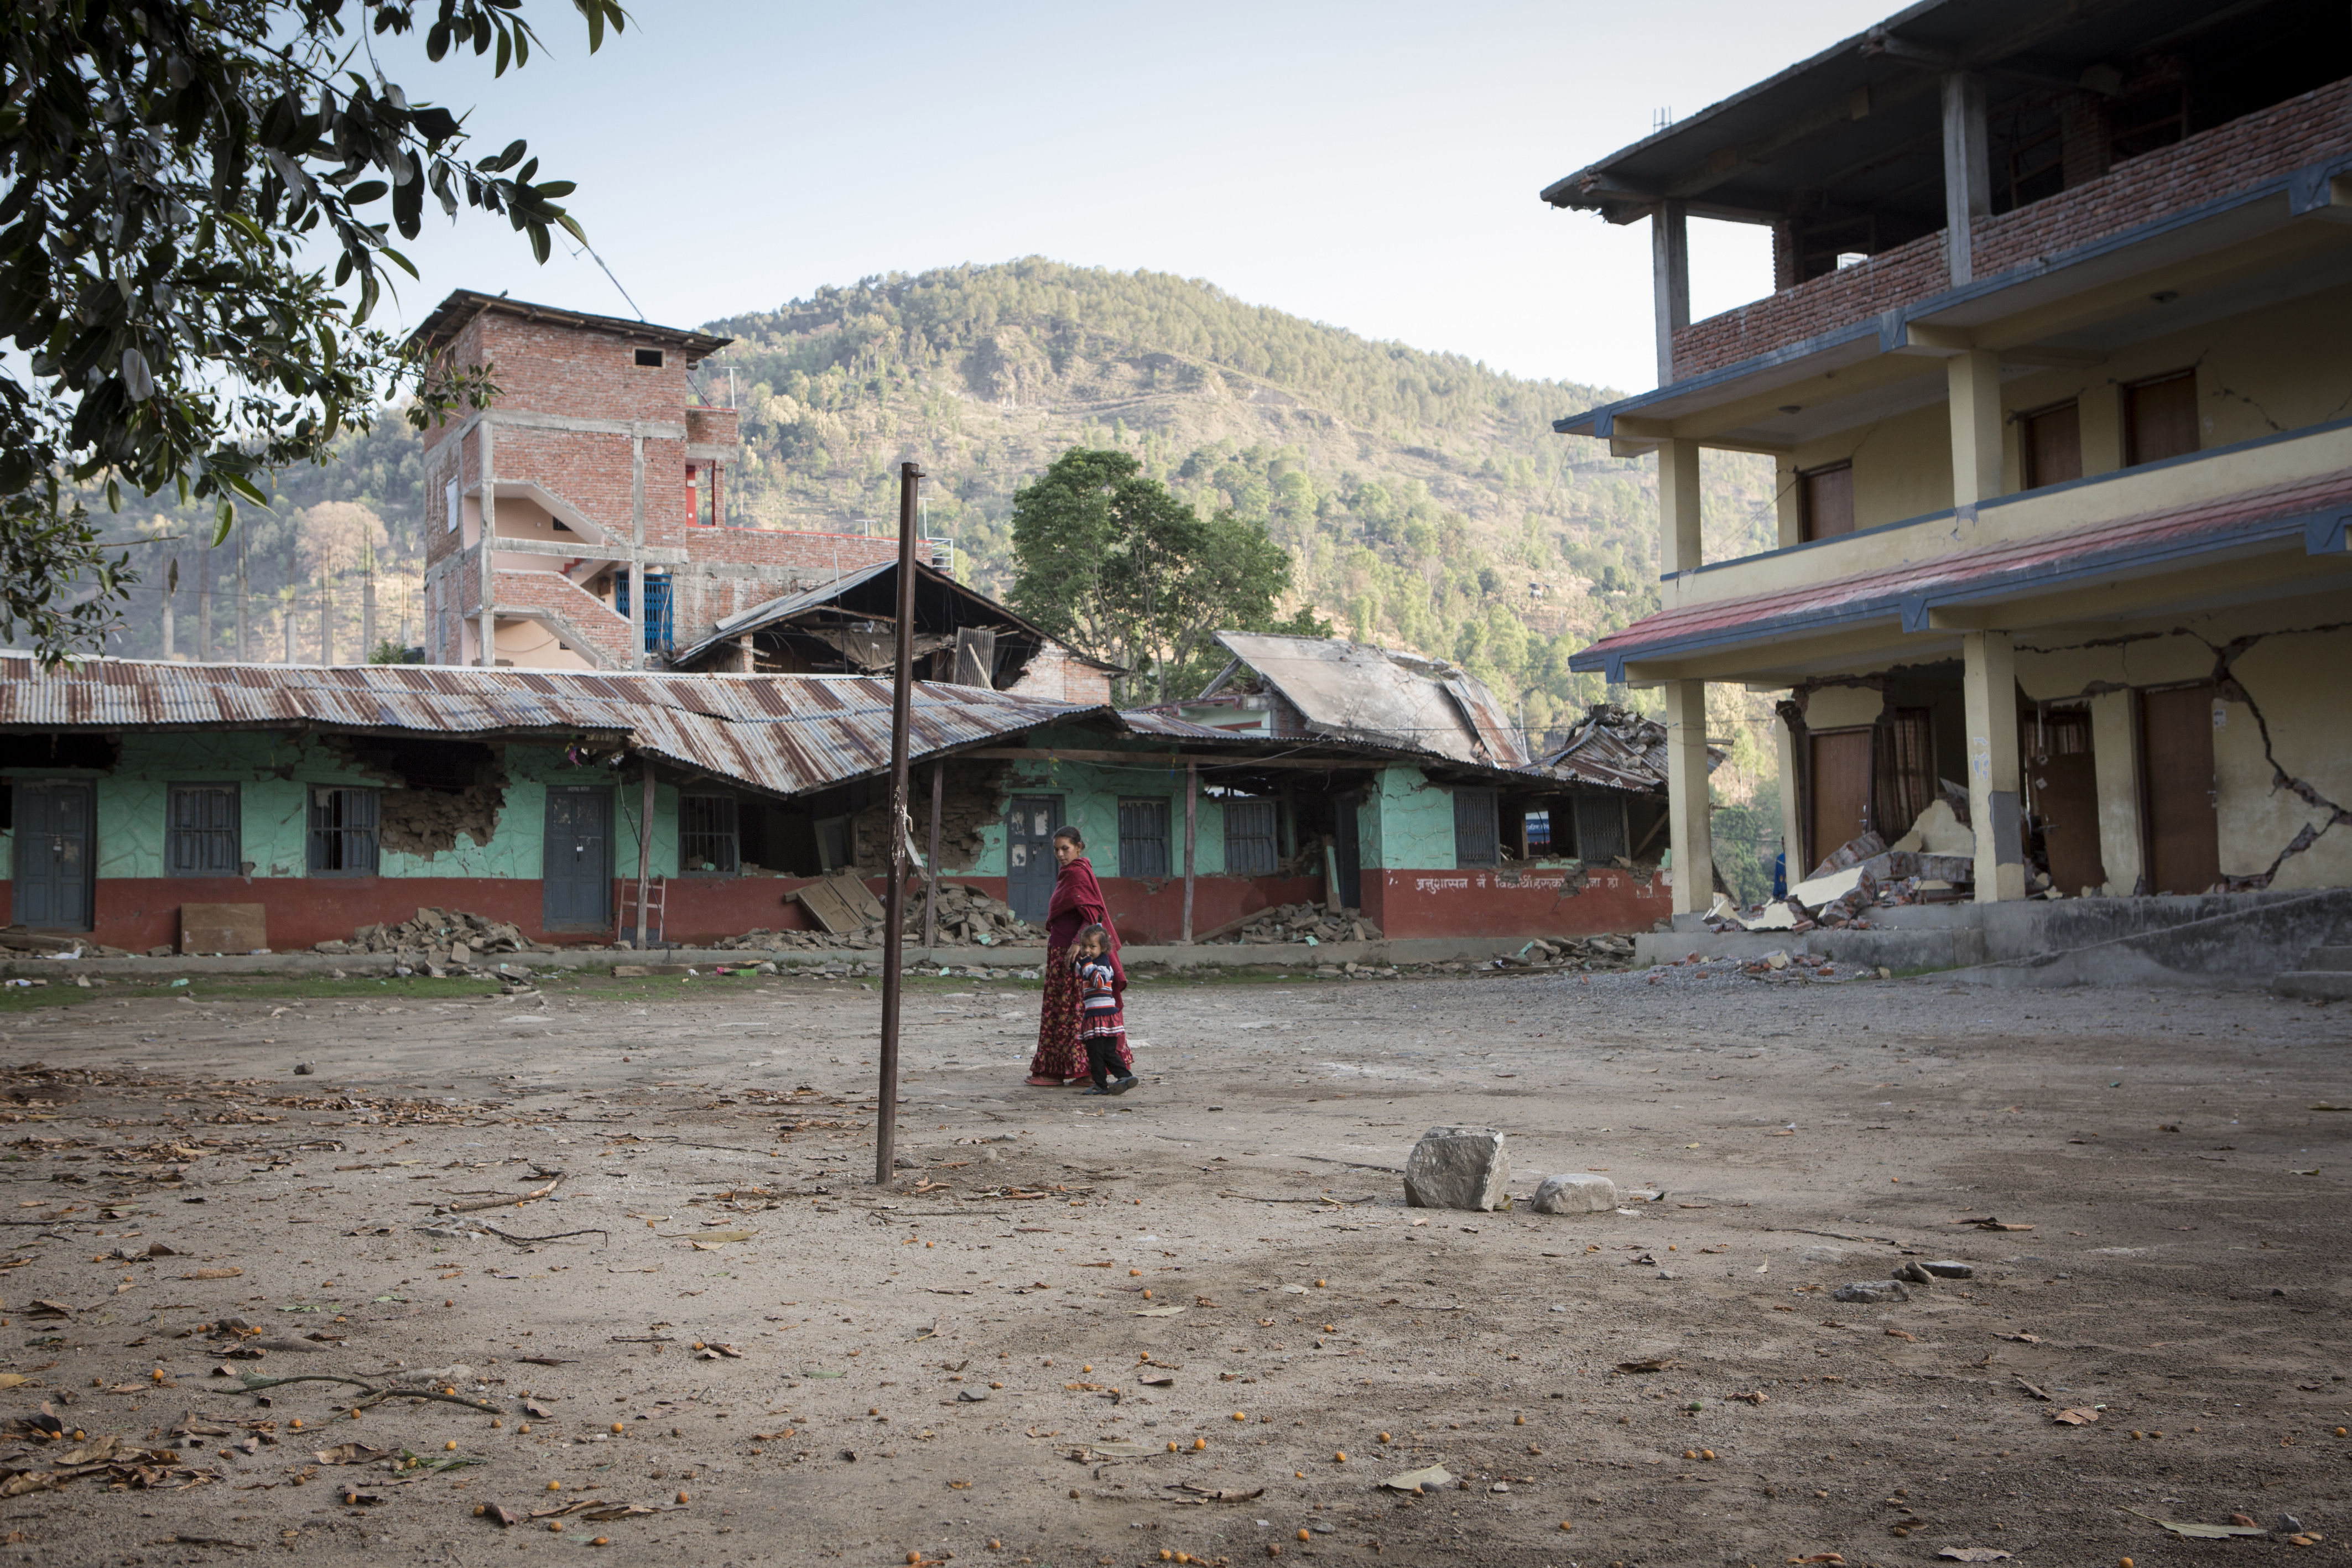 Touring the gounds of a damaged school in Nepal.